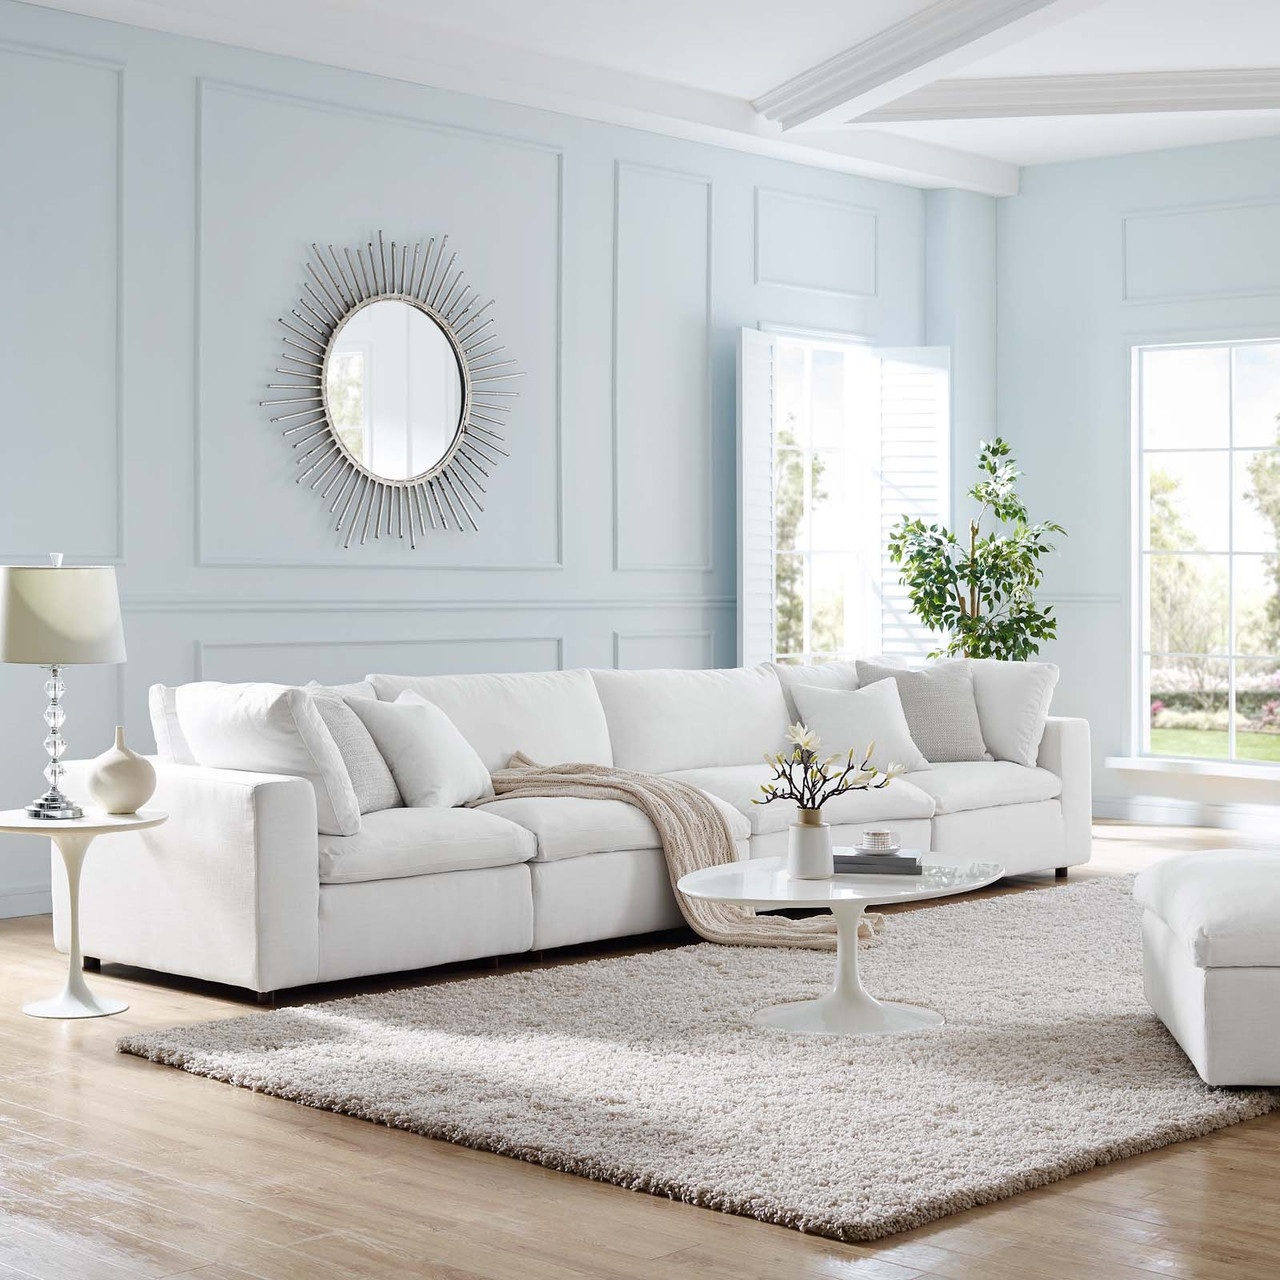 commix down filled overstuffed 4 piece sectional sofa set white eei 3357 whi